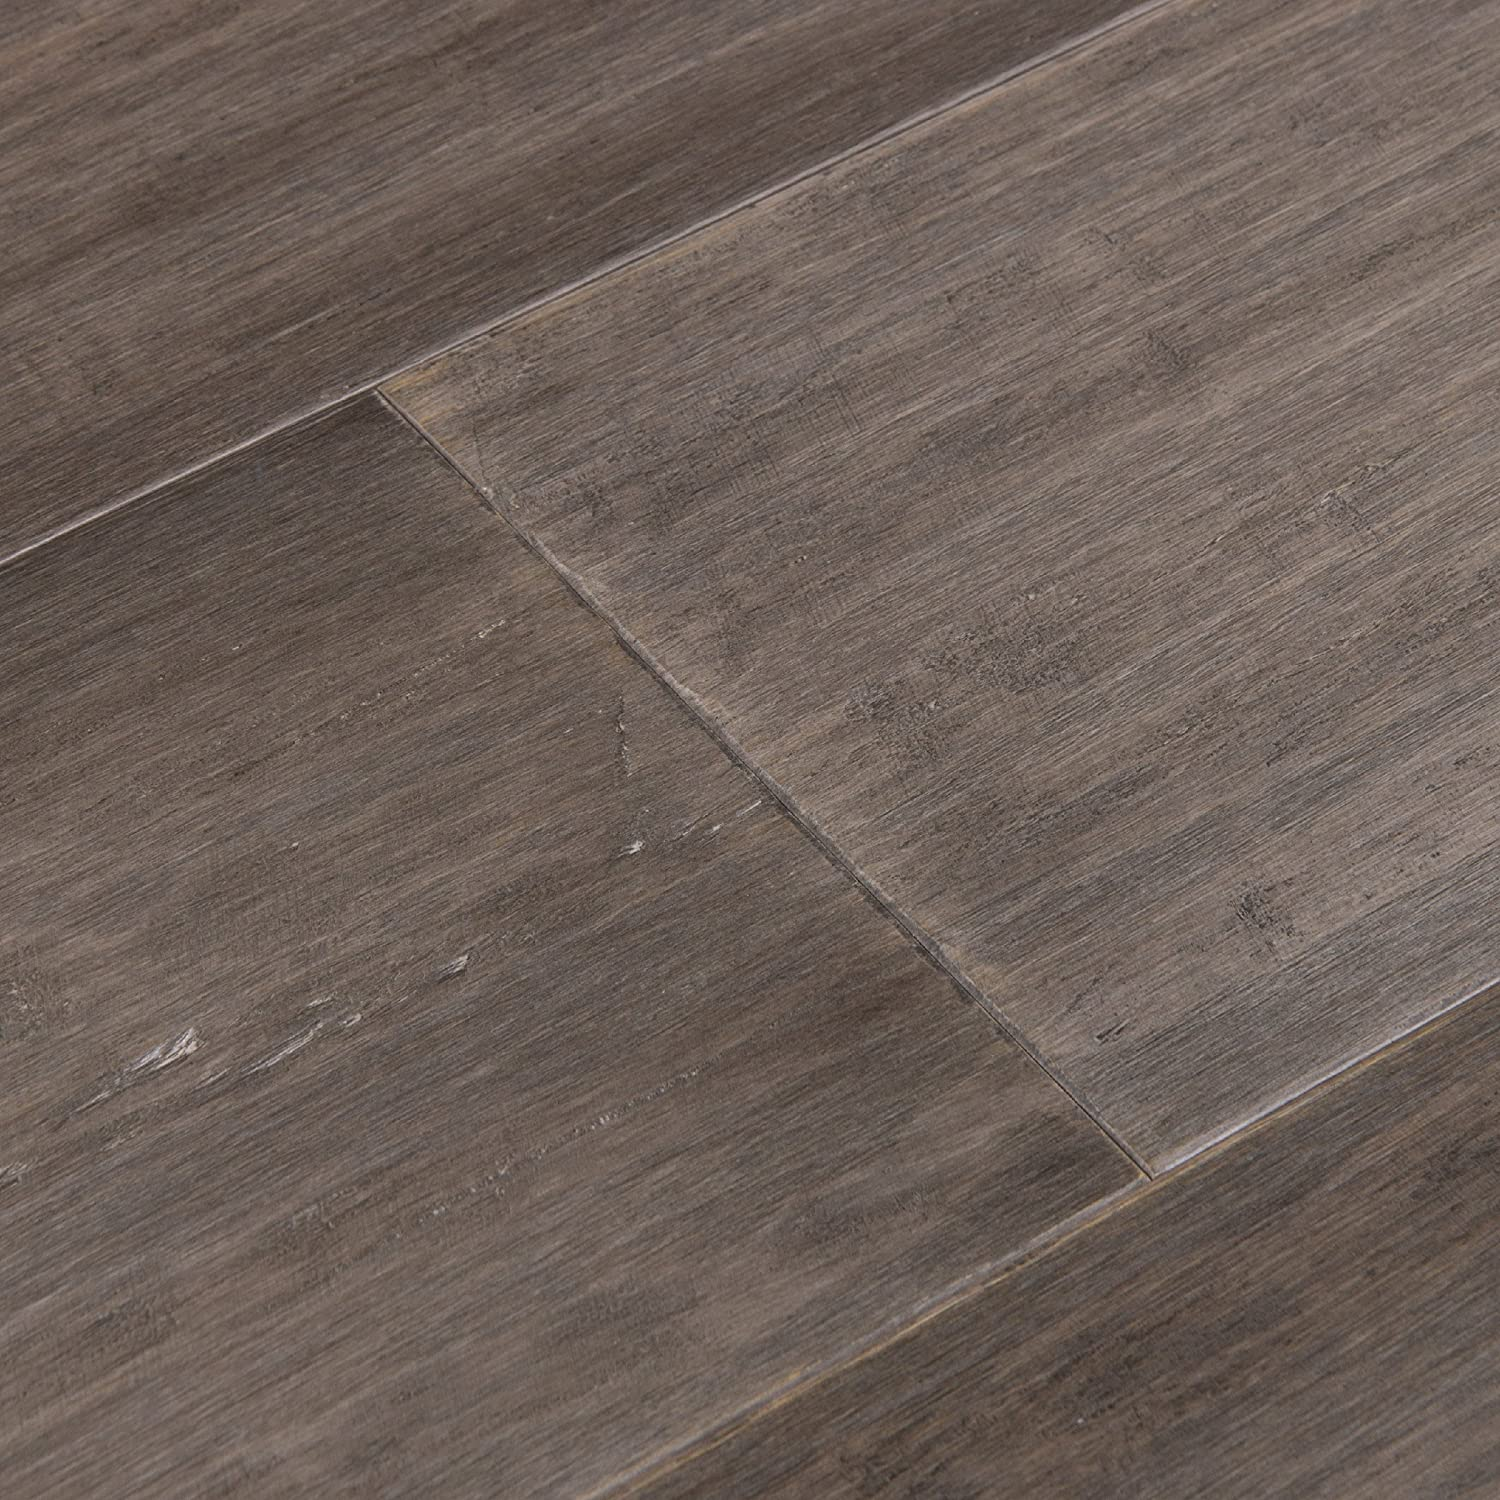 Cali Bamboo Extra Wide T&G Engineered Flooring Boardwalk Gray